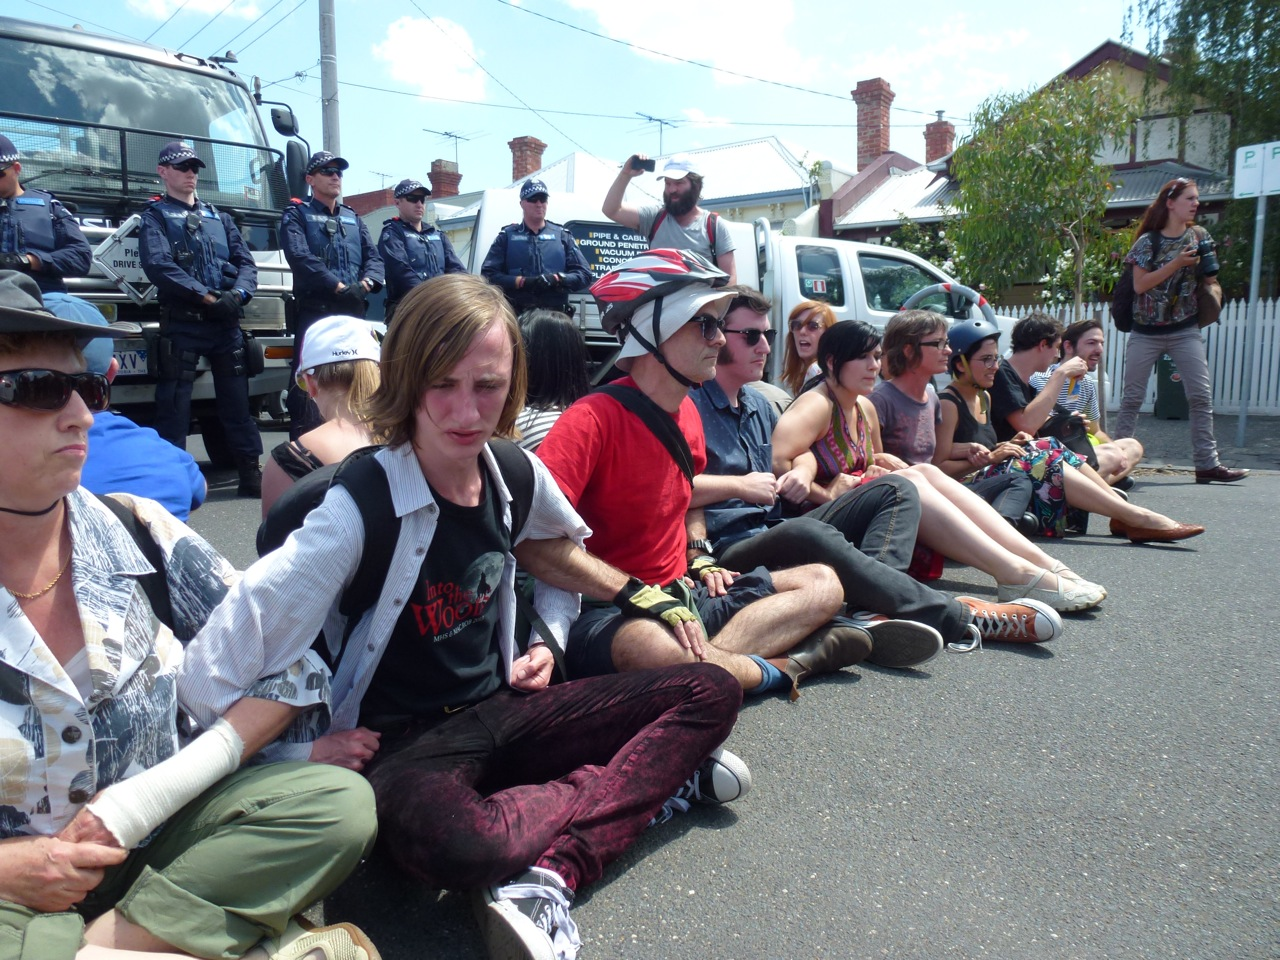 Image 2 from From the feature article entitled 'The Silencing Act: the East-West Tunnel Protests'.